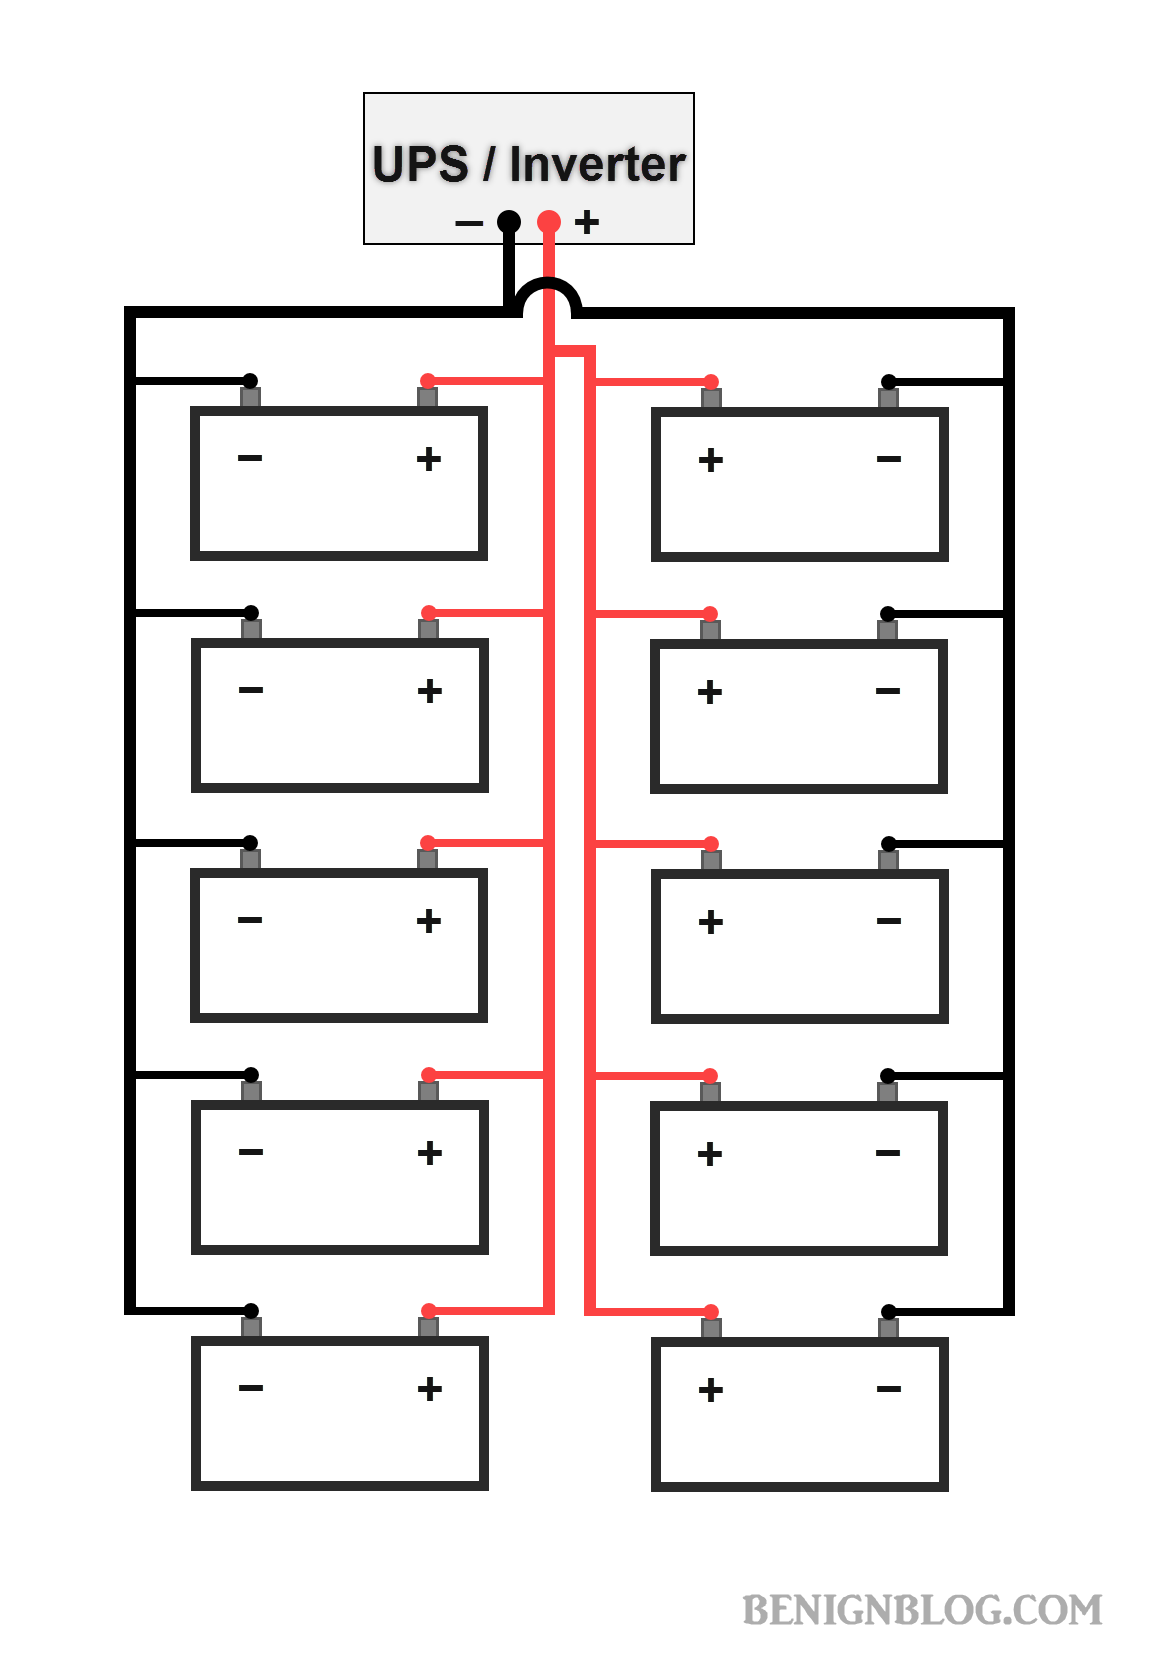 ups battery diagram wiring diagrams ups battery backup circuit diagram how to connect batteries in parallel with power inverter or ups ups backup diagram ups battery diagram